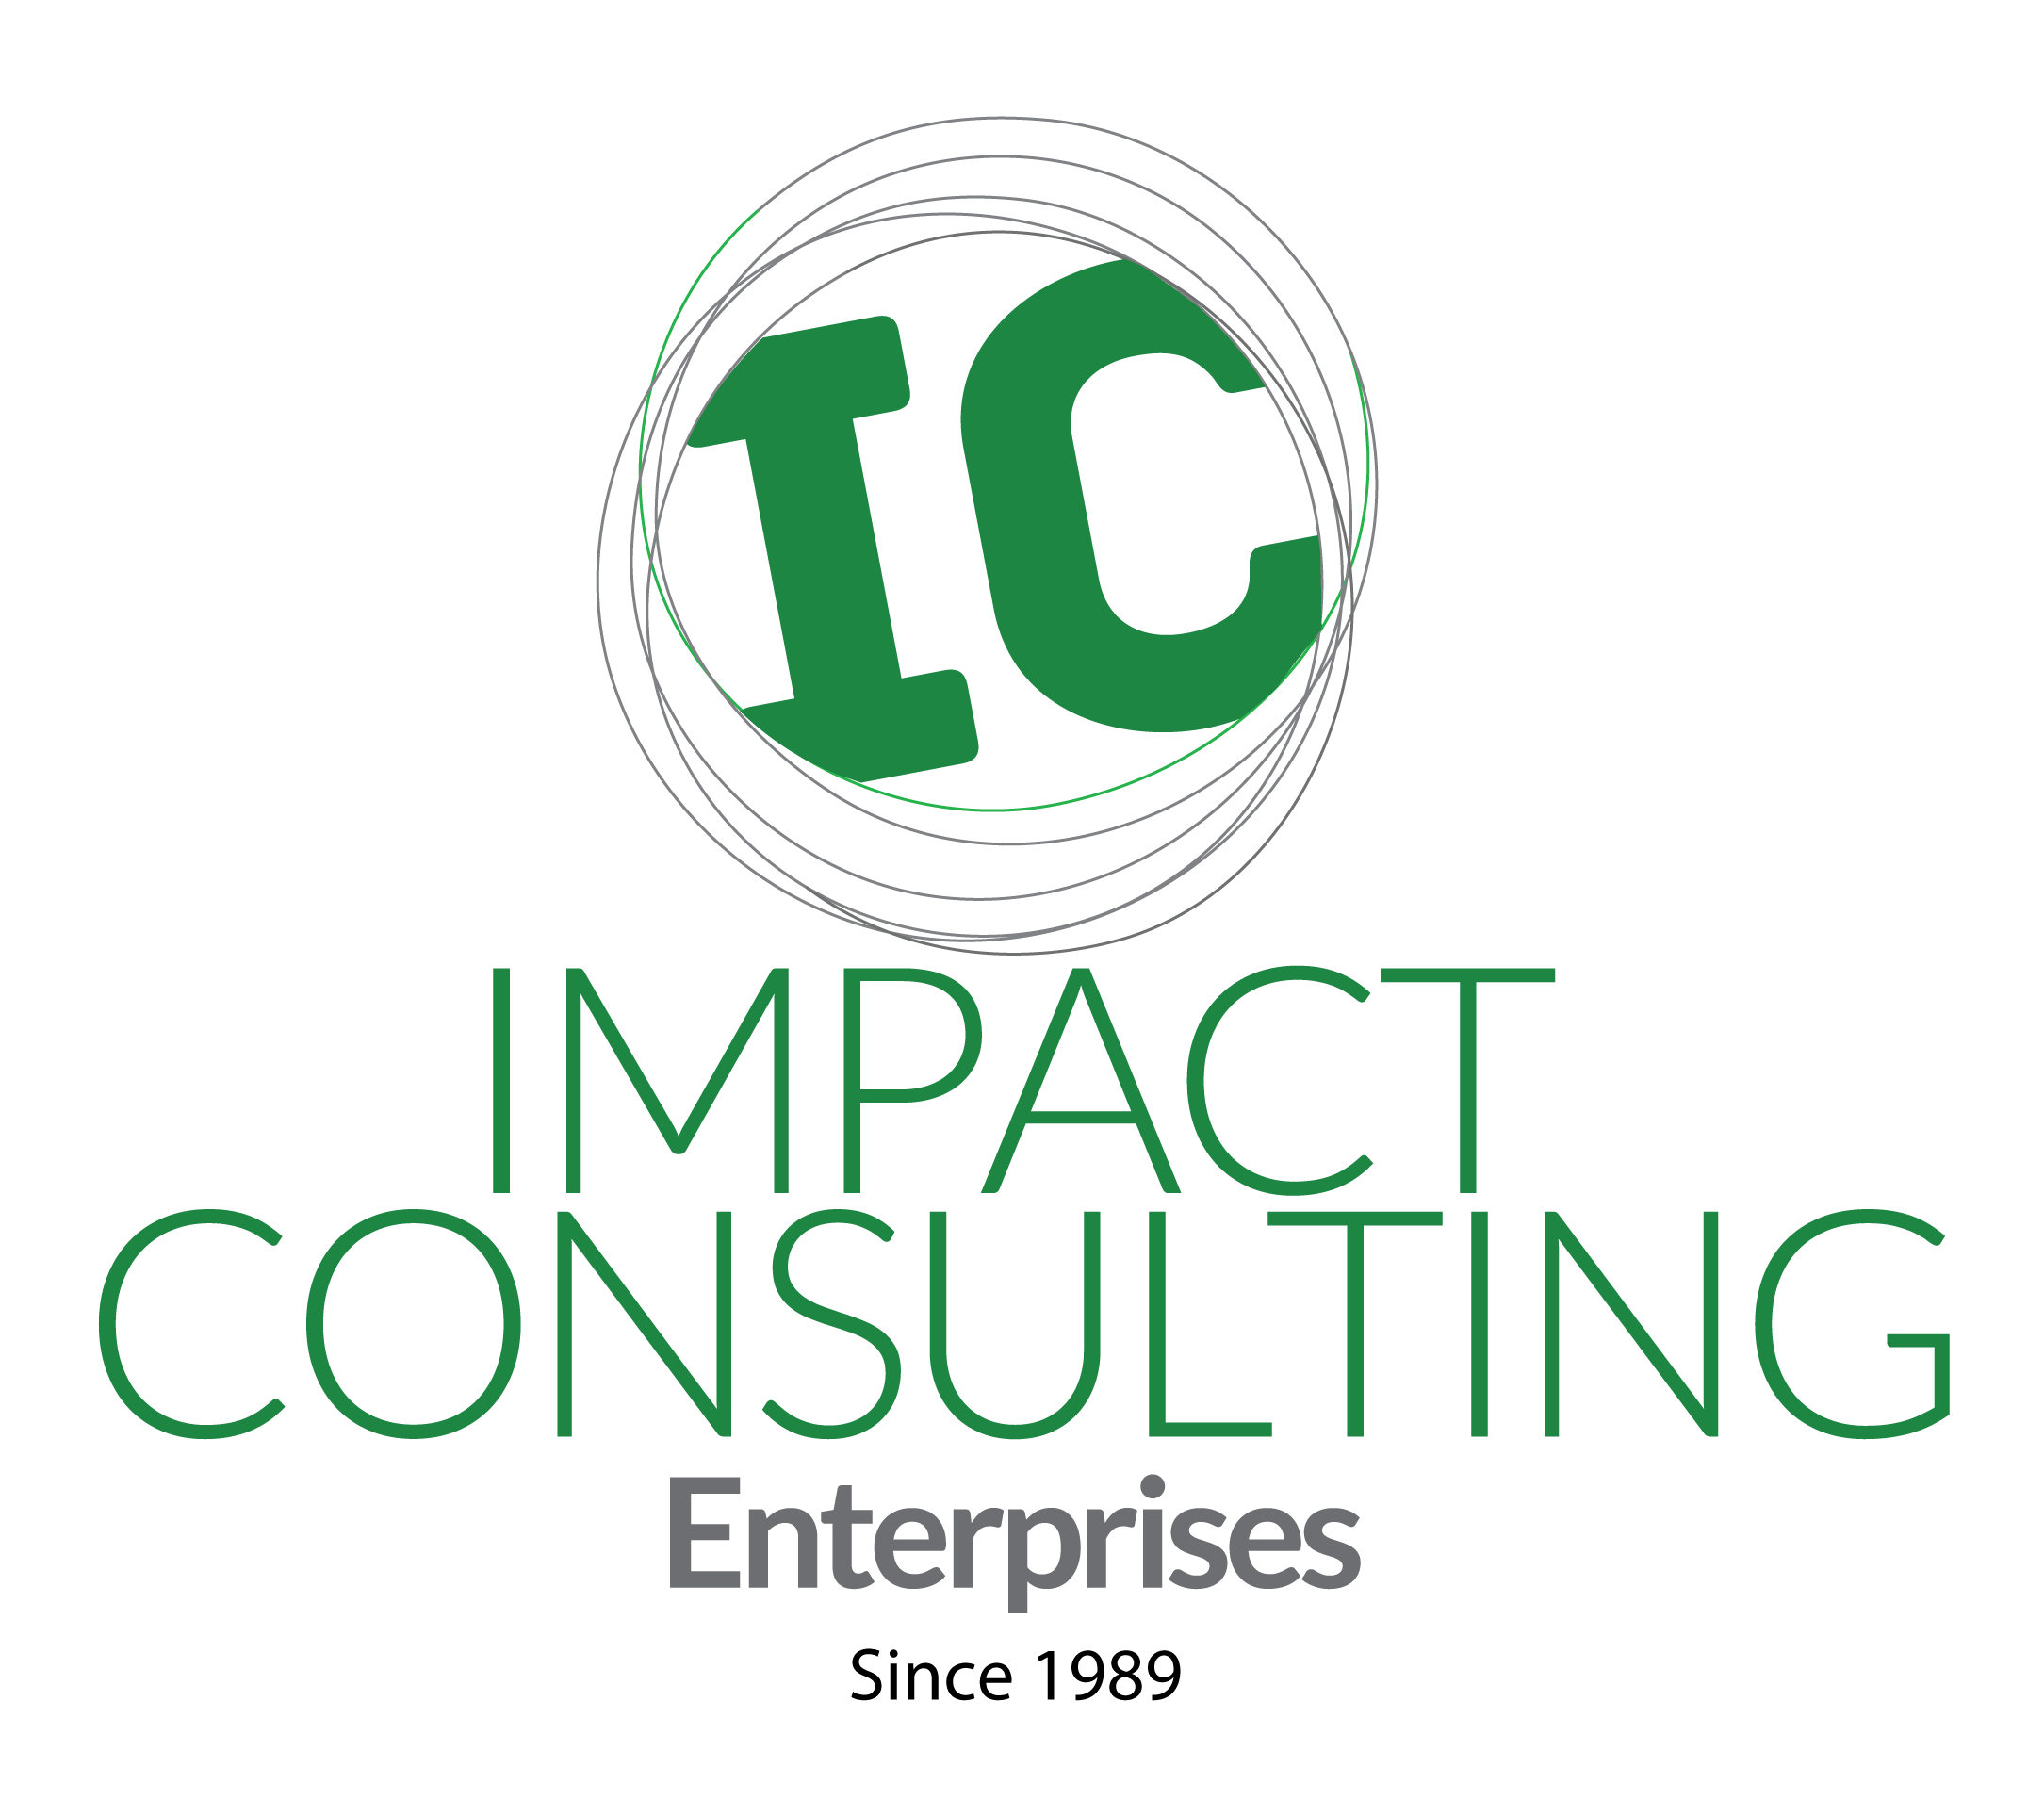 About Impact Consulting